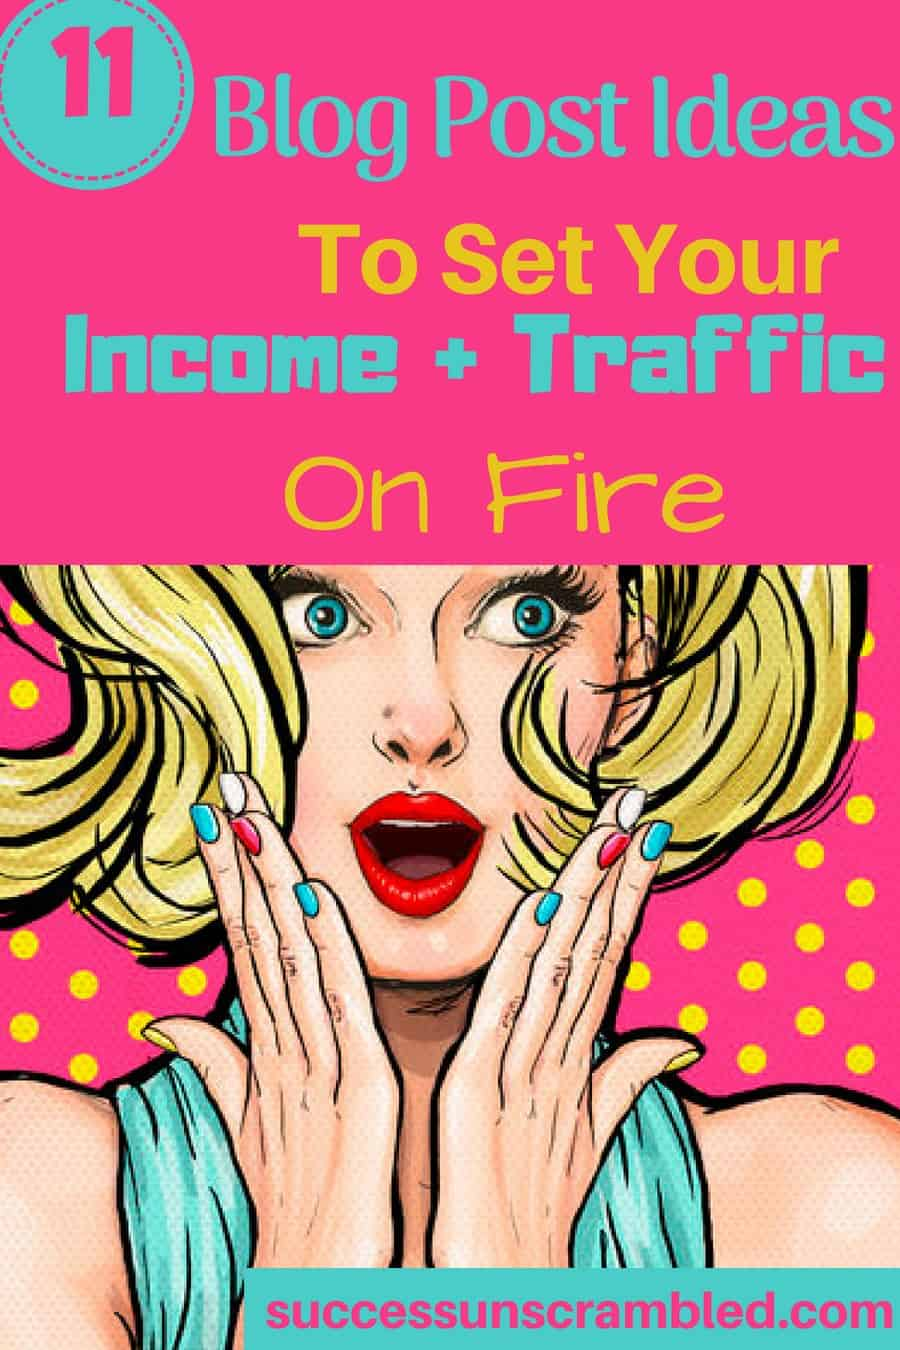 11 Blog Post Ideas To Set Your Traffic + Income On Fire